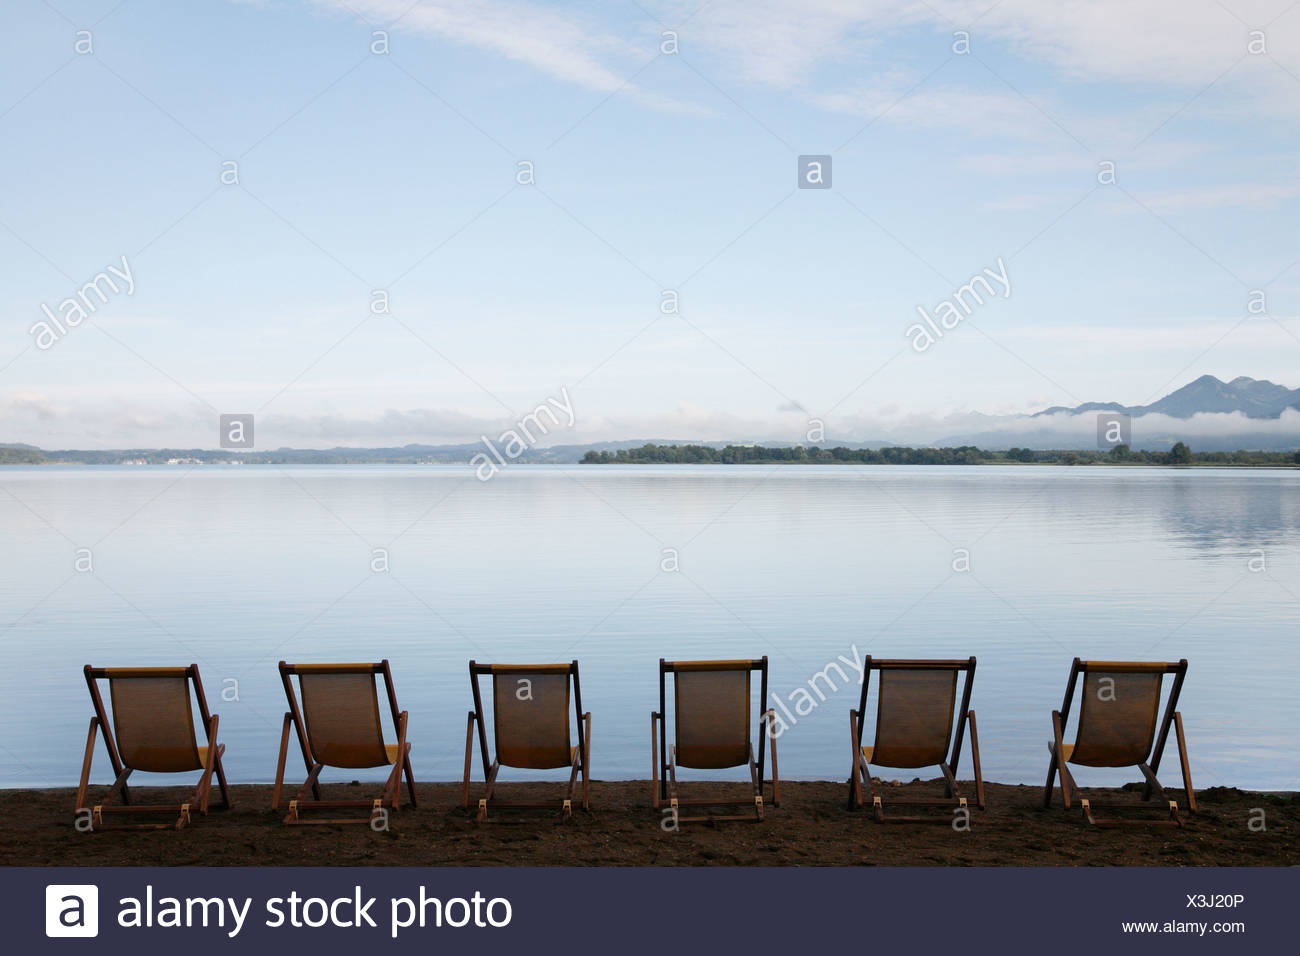 Germany, Bavaria, Chiemsee, Row of folded chairs by lake Stock Photo